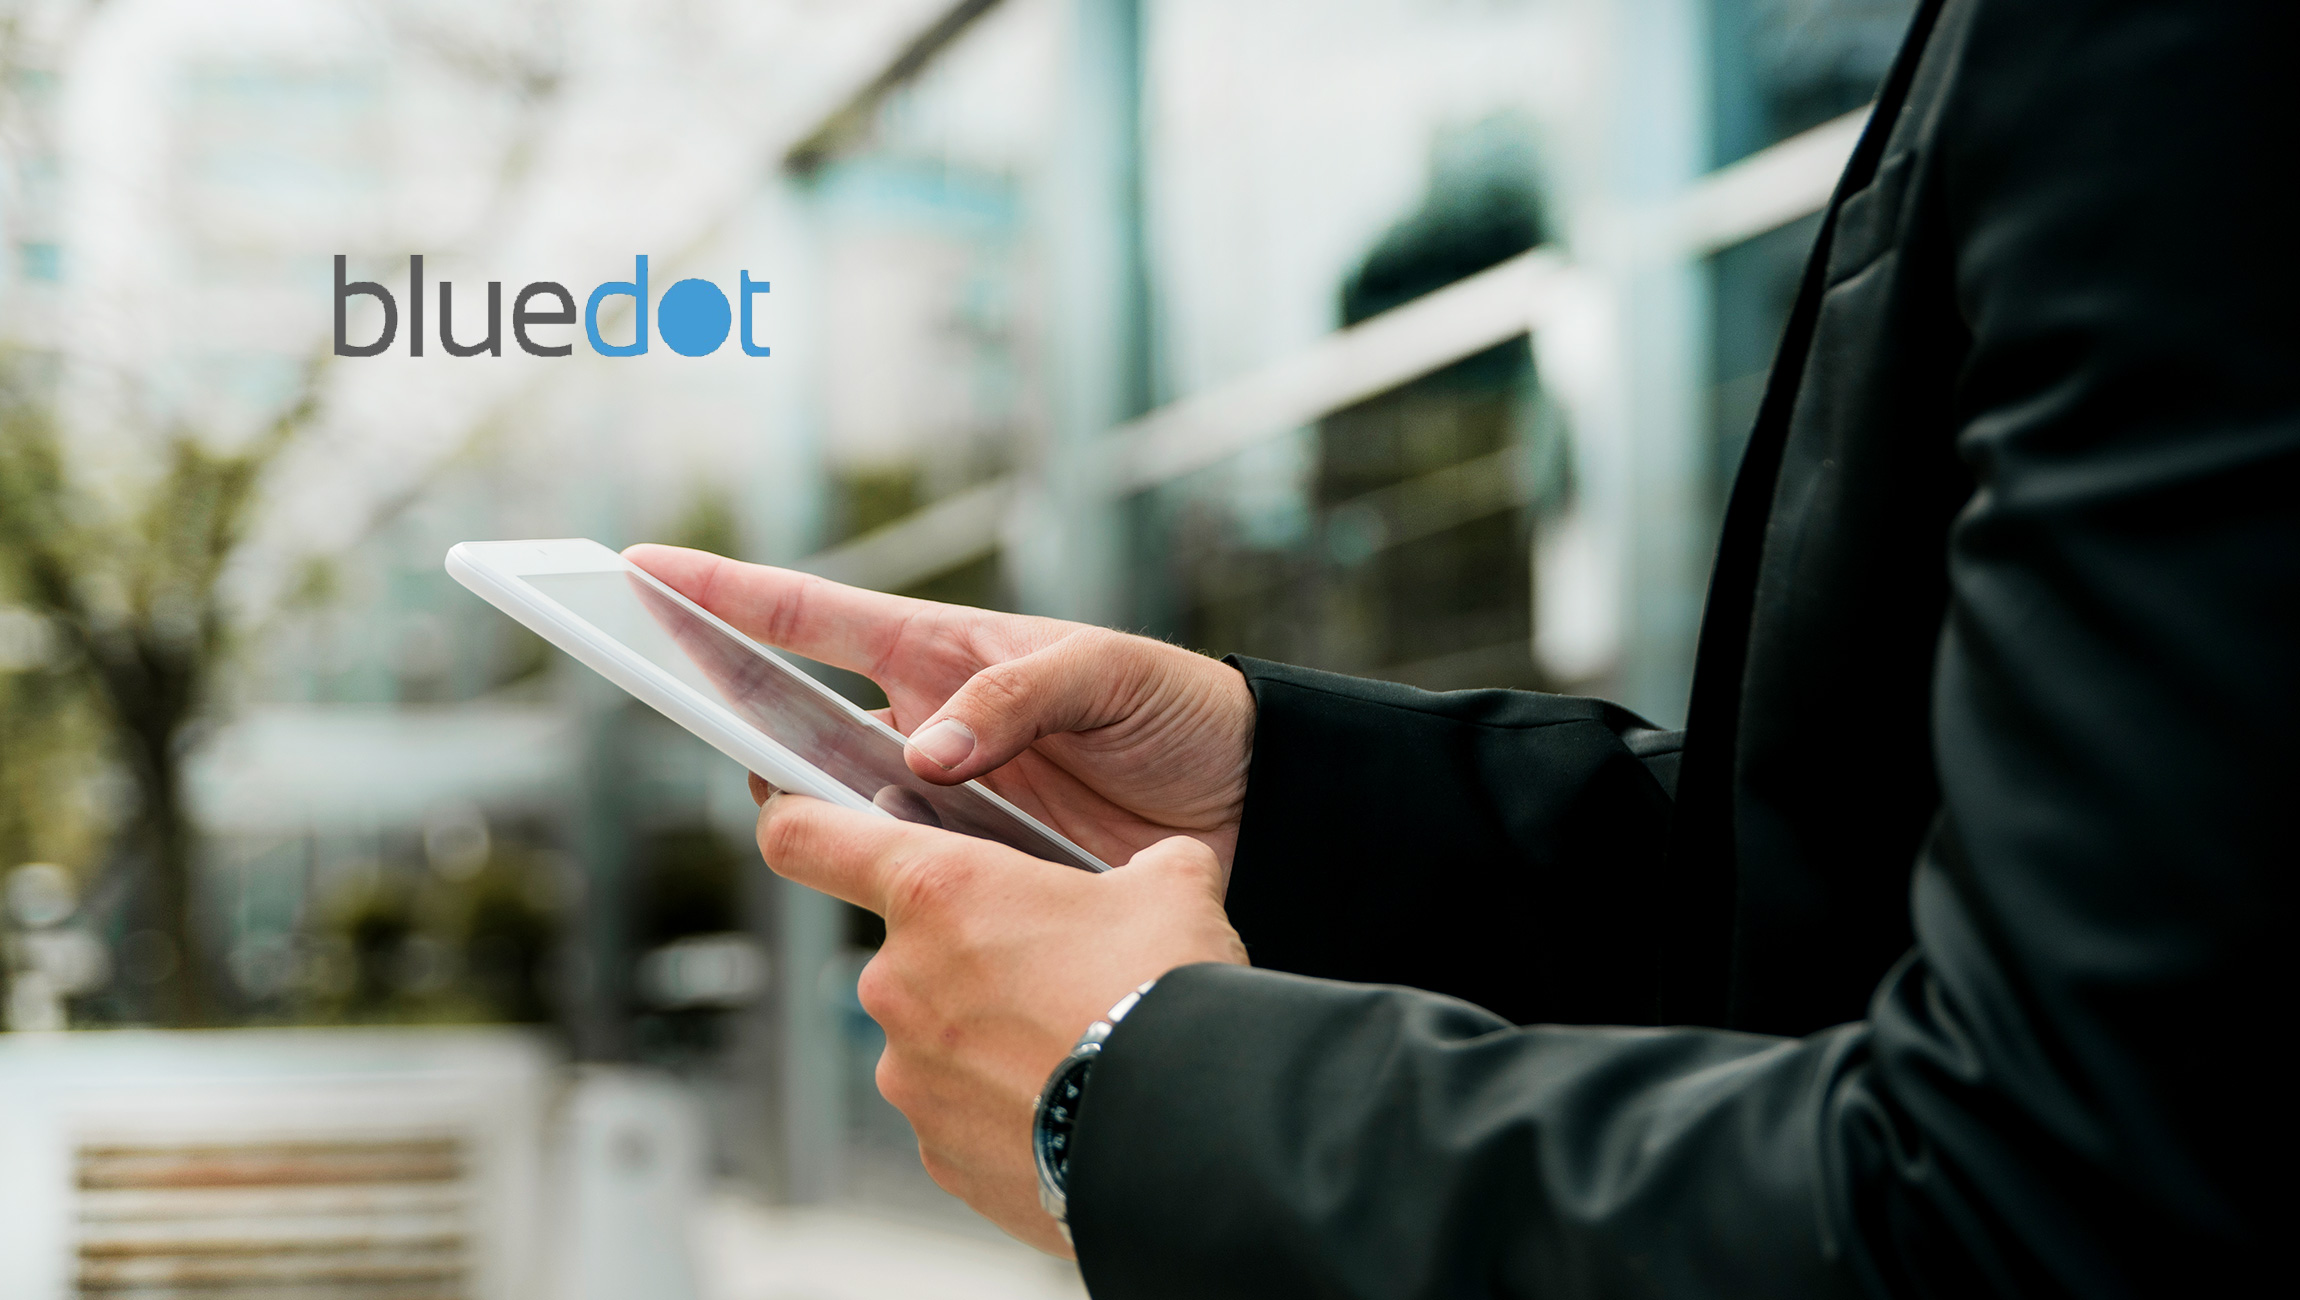 Bluedot Raises $9.1 Million in Funding to Meet Surge in Customer Growth